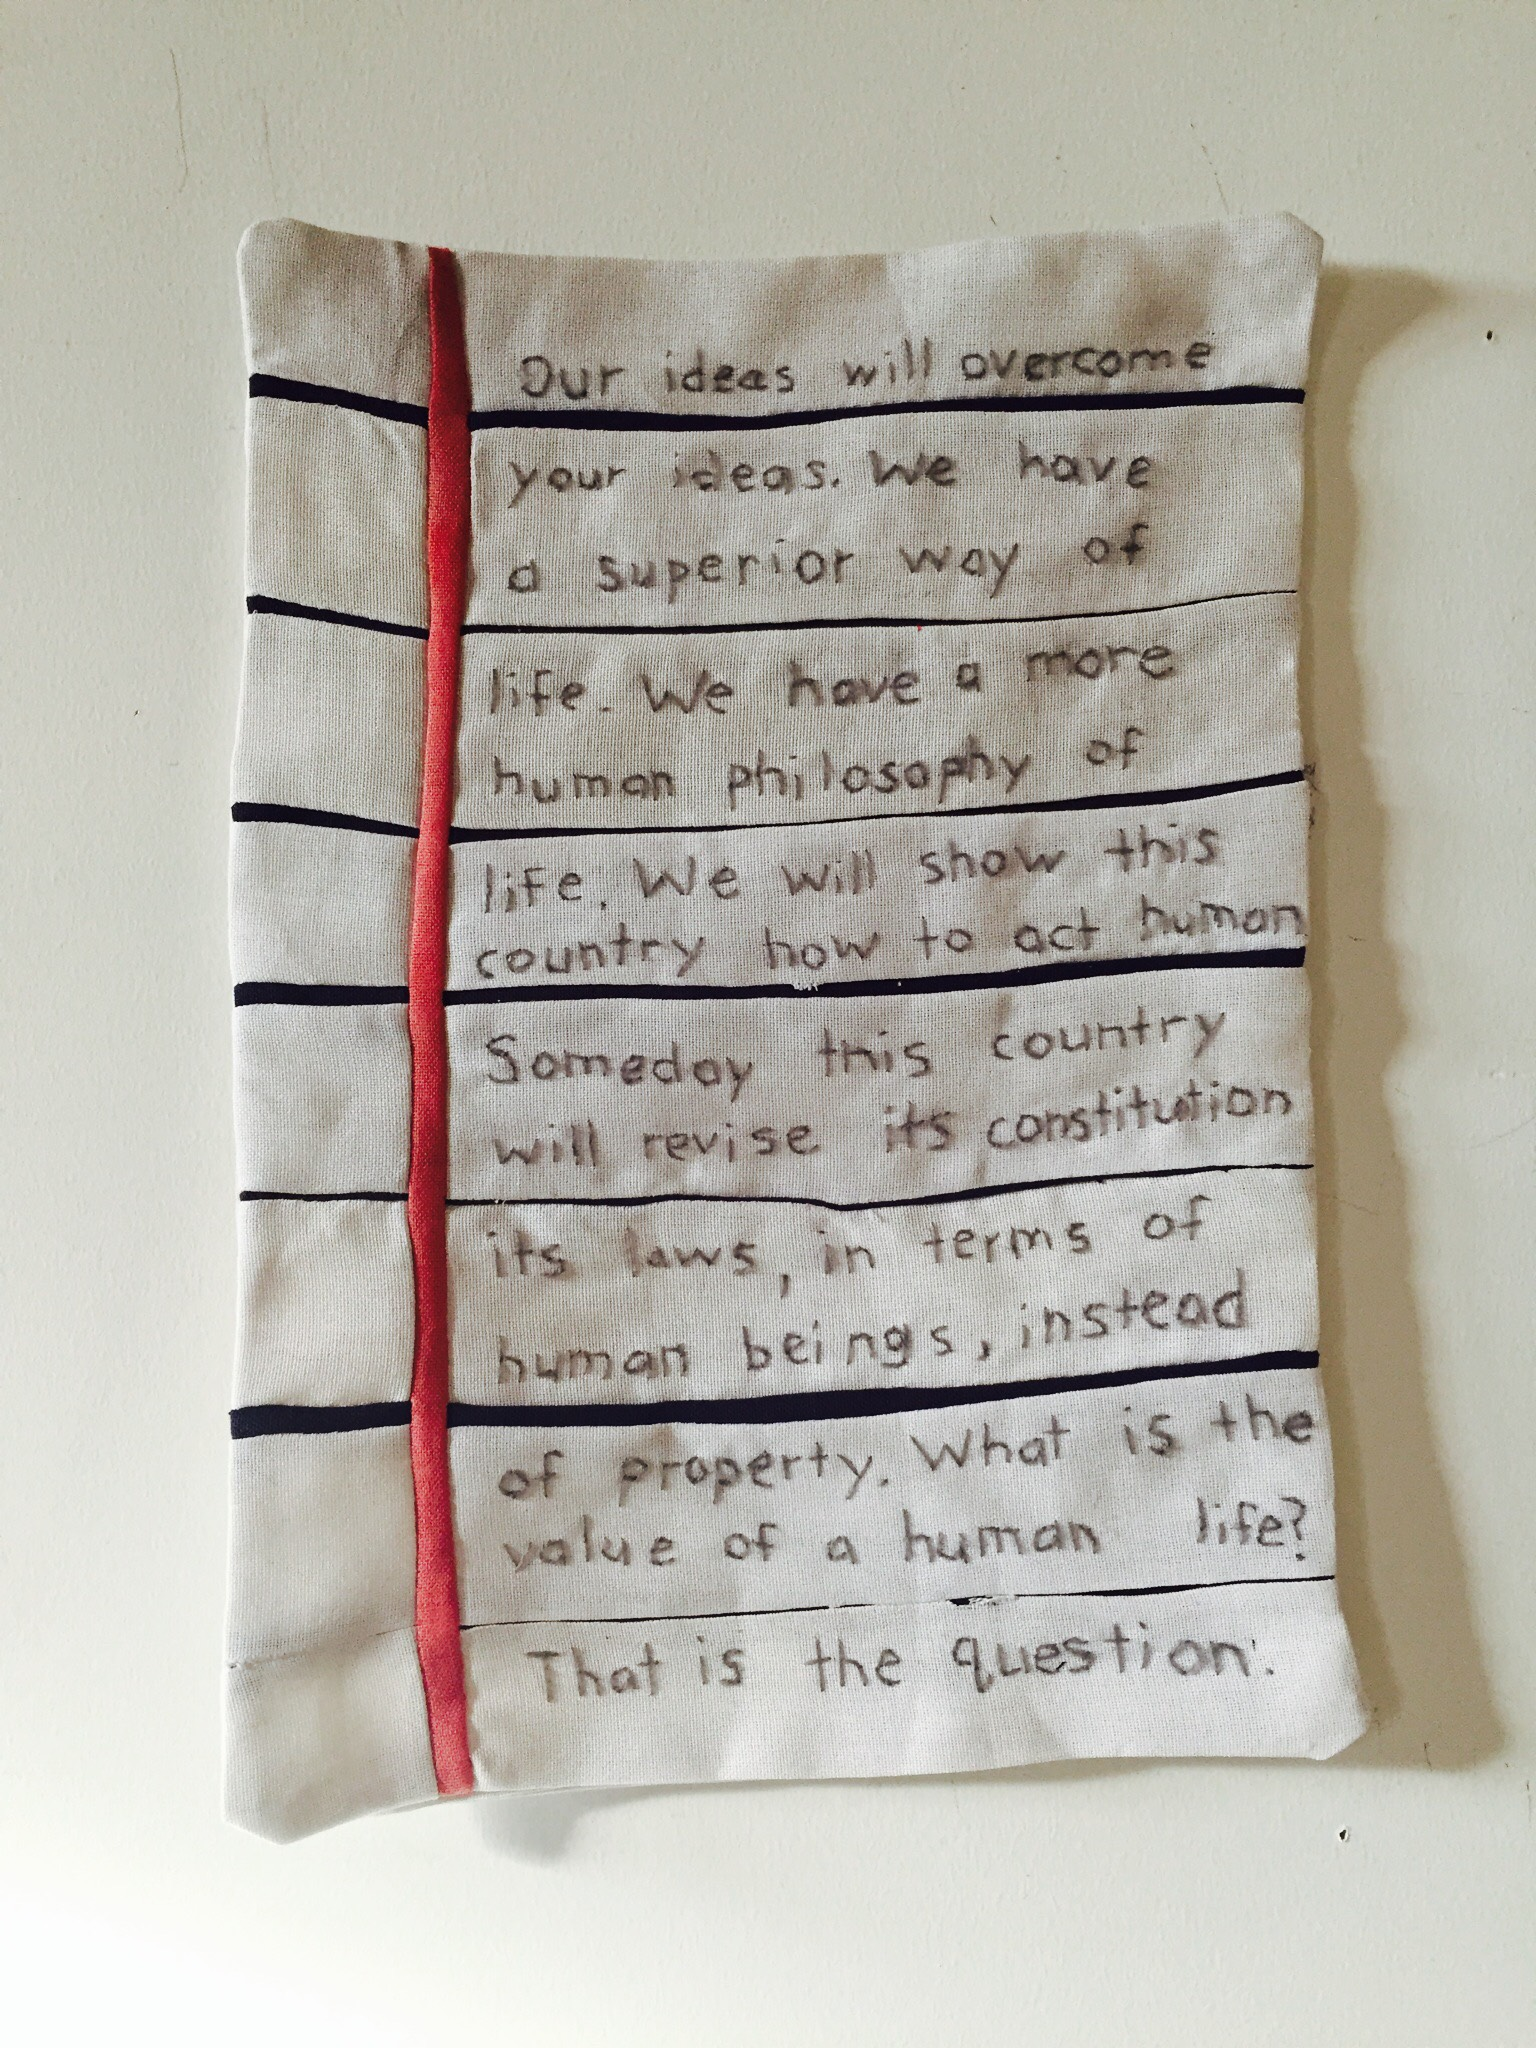 Megan Whitmarsh,1971/2017, American flag, embroidery thread and words by Vine Deloria Jr. circa 1971, 15 X 10 inches